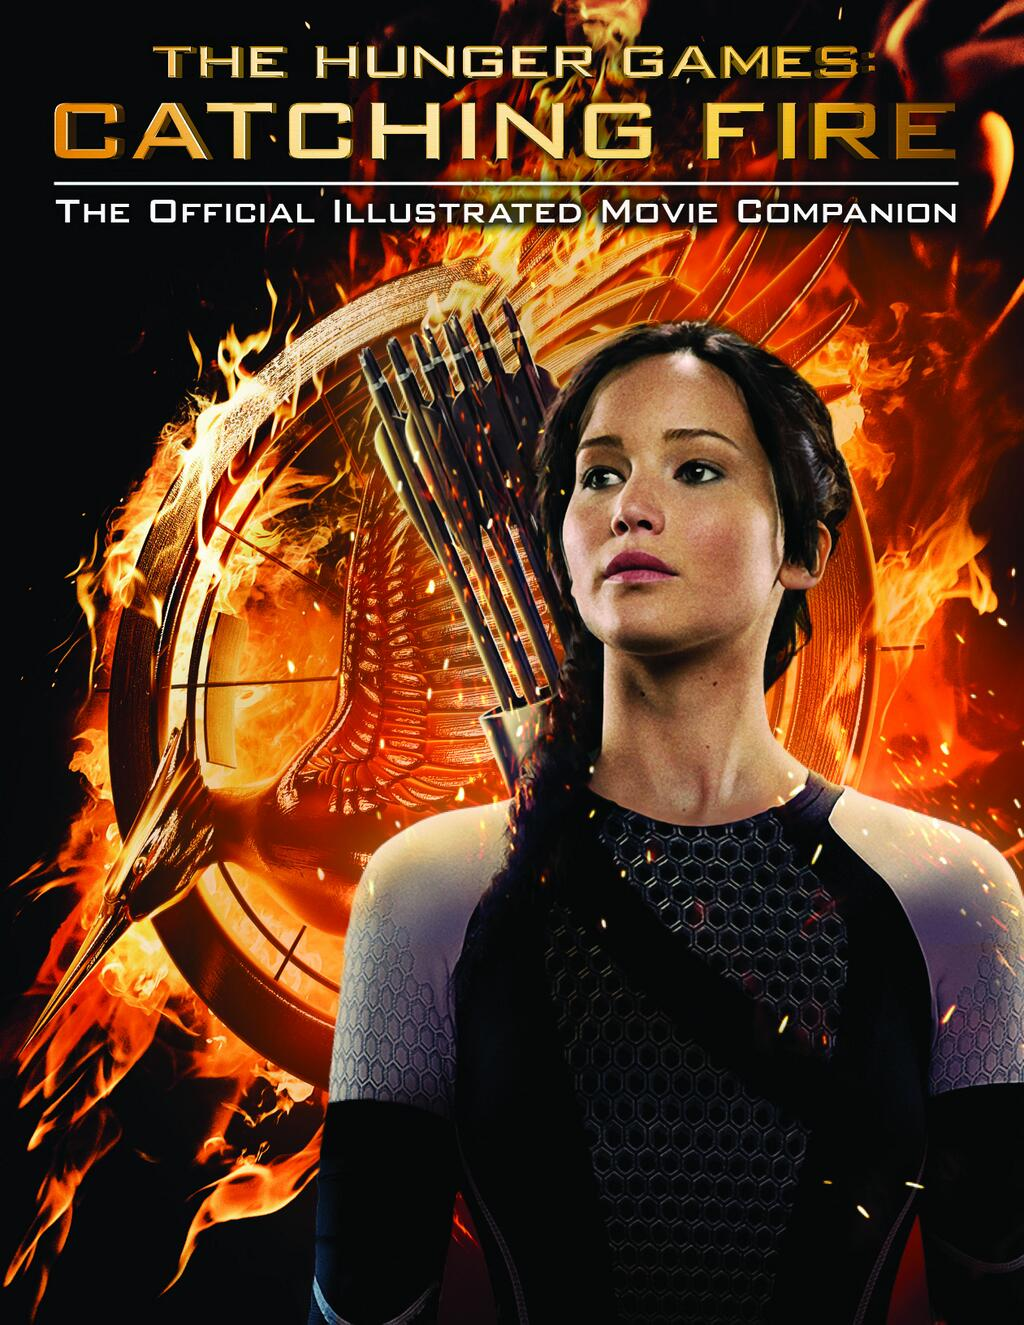 UPDATED: Catching Fire Official Movie Companion Available ...